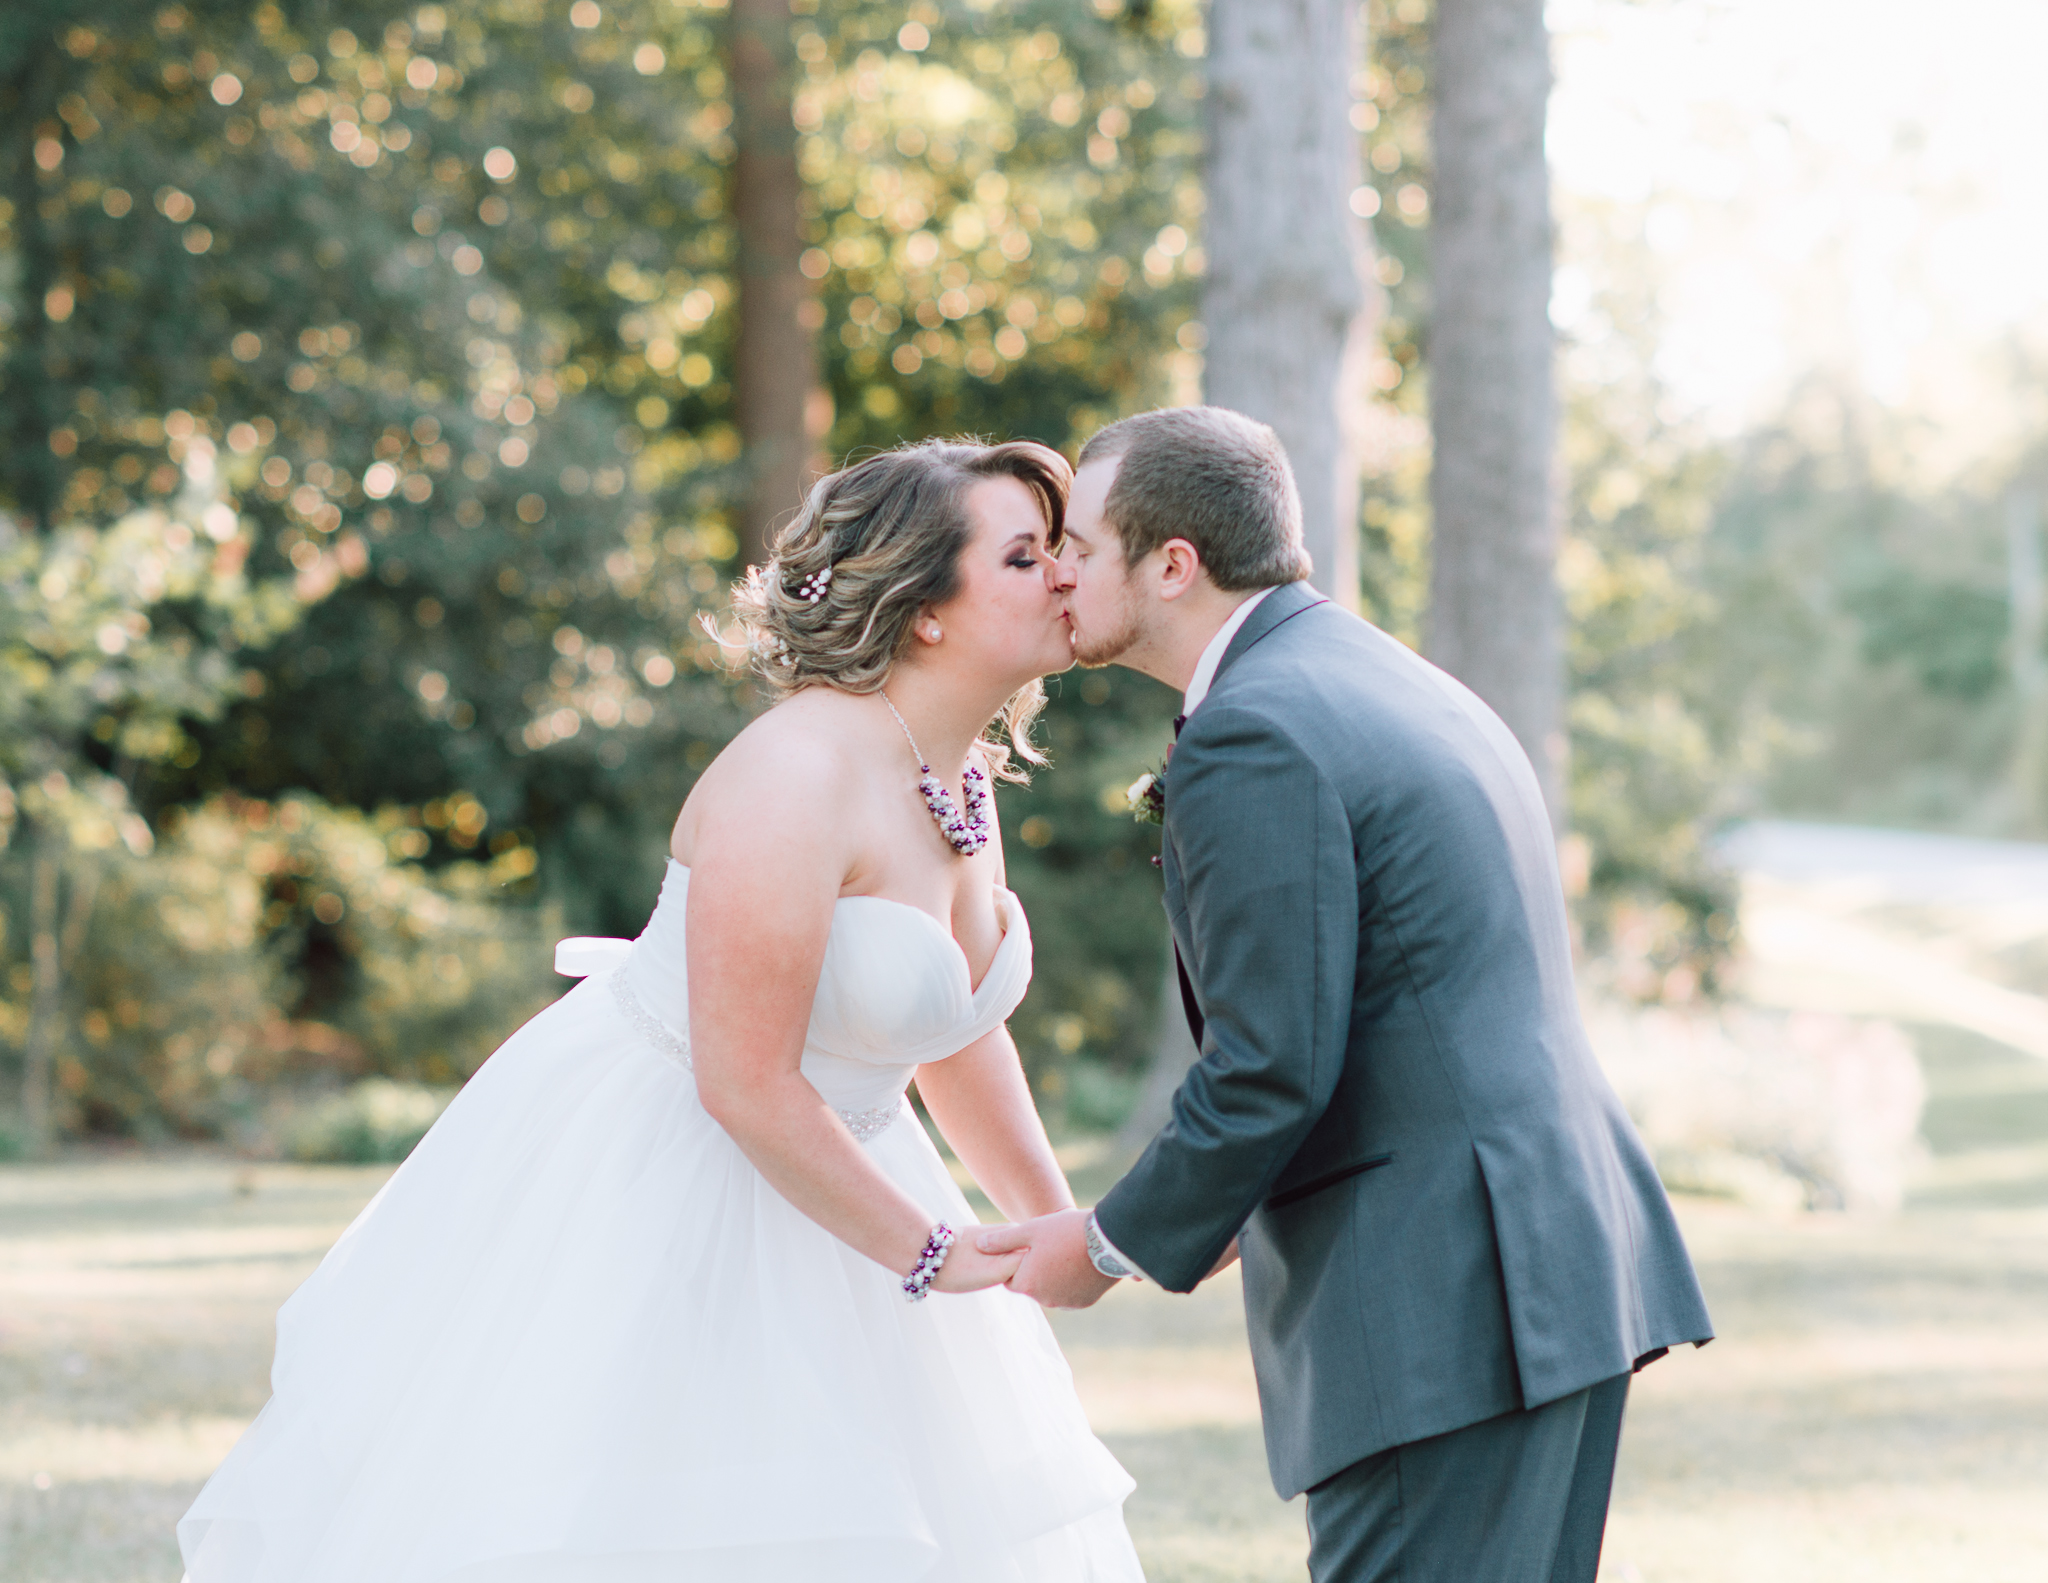 youseephotography_virginiawedding_fall_WallaceManor_EmilyCody (87).jpg